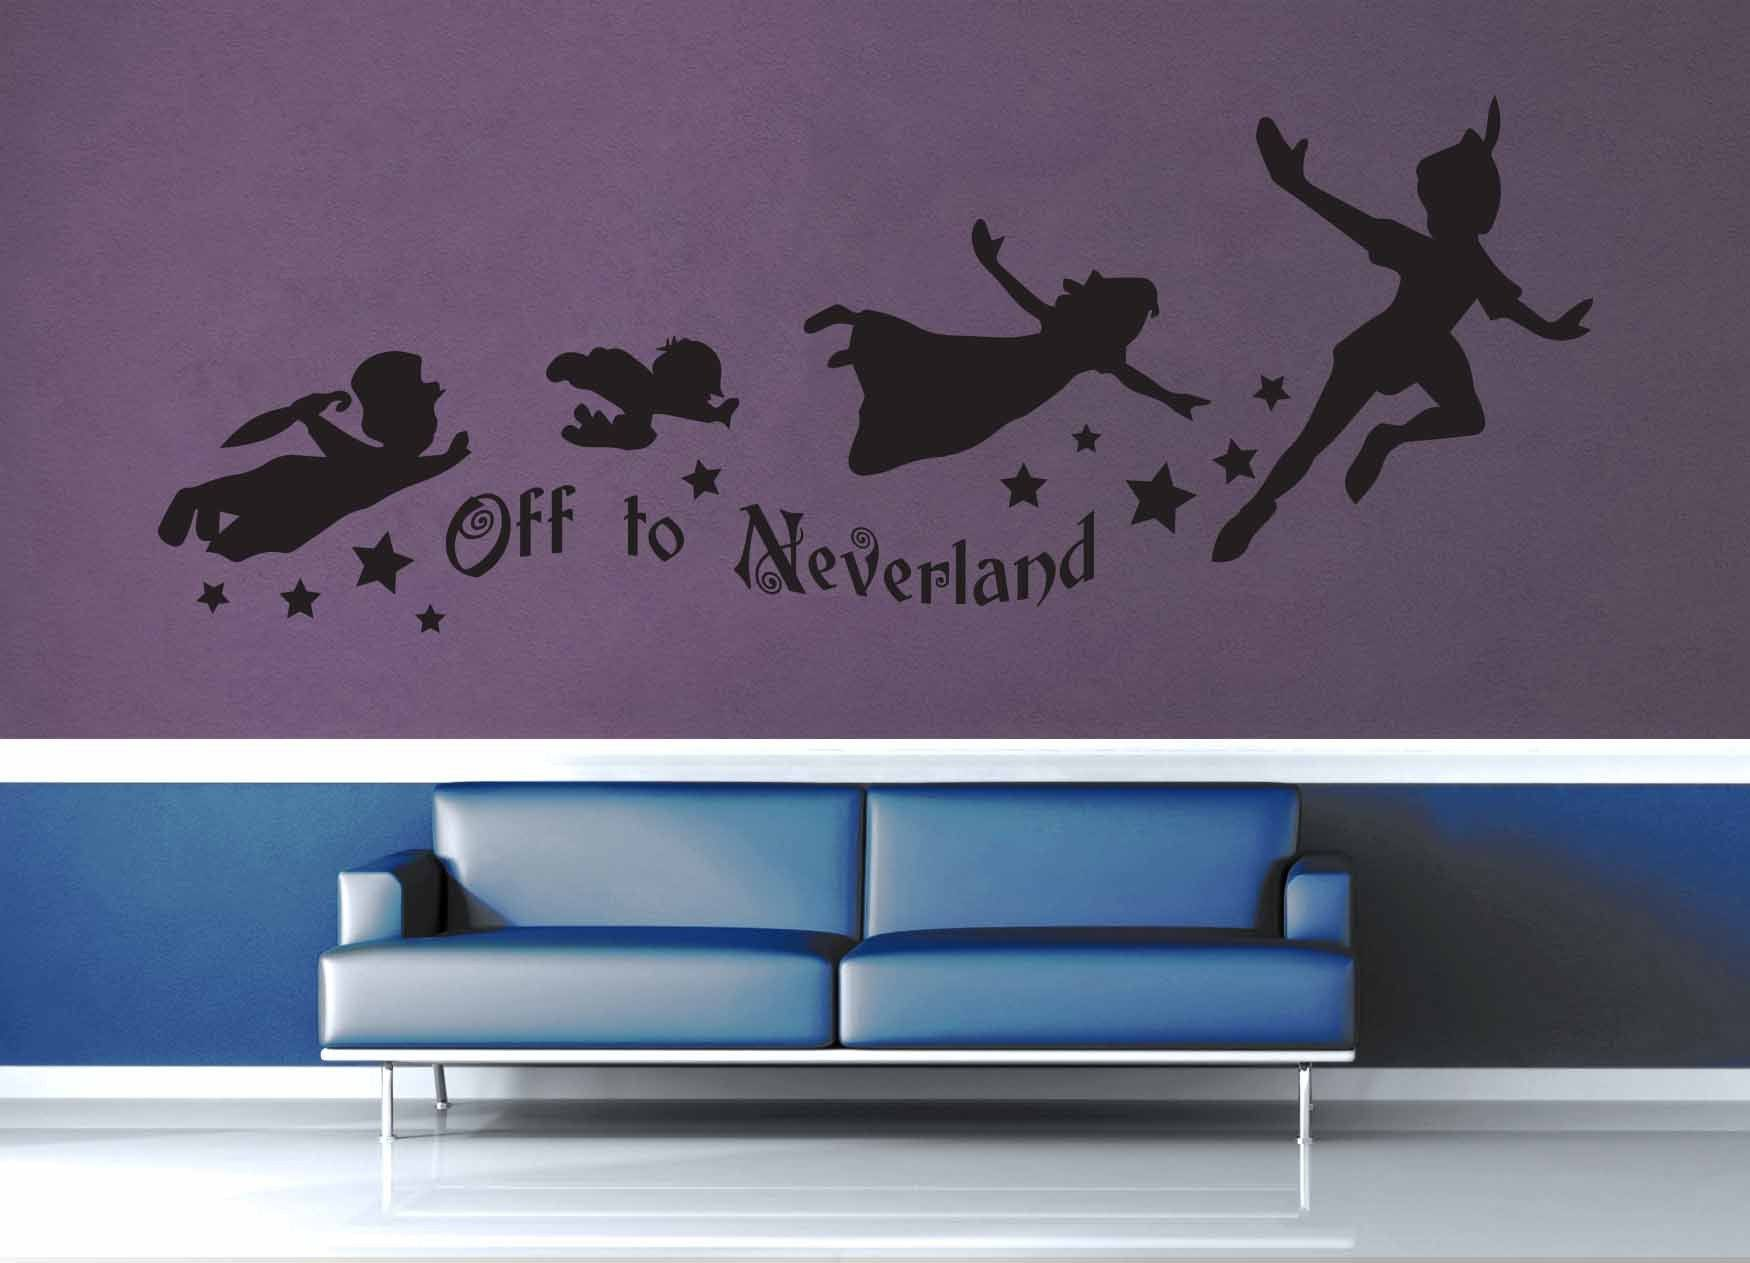 Off to Neverland - Peter Pan Quote - Wall Decal